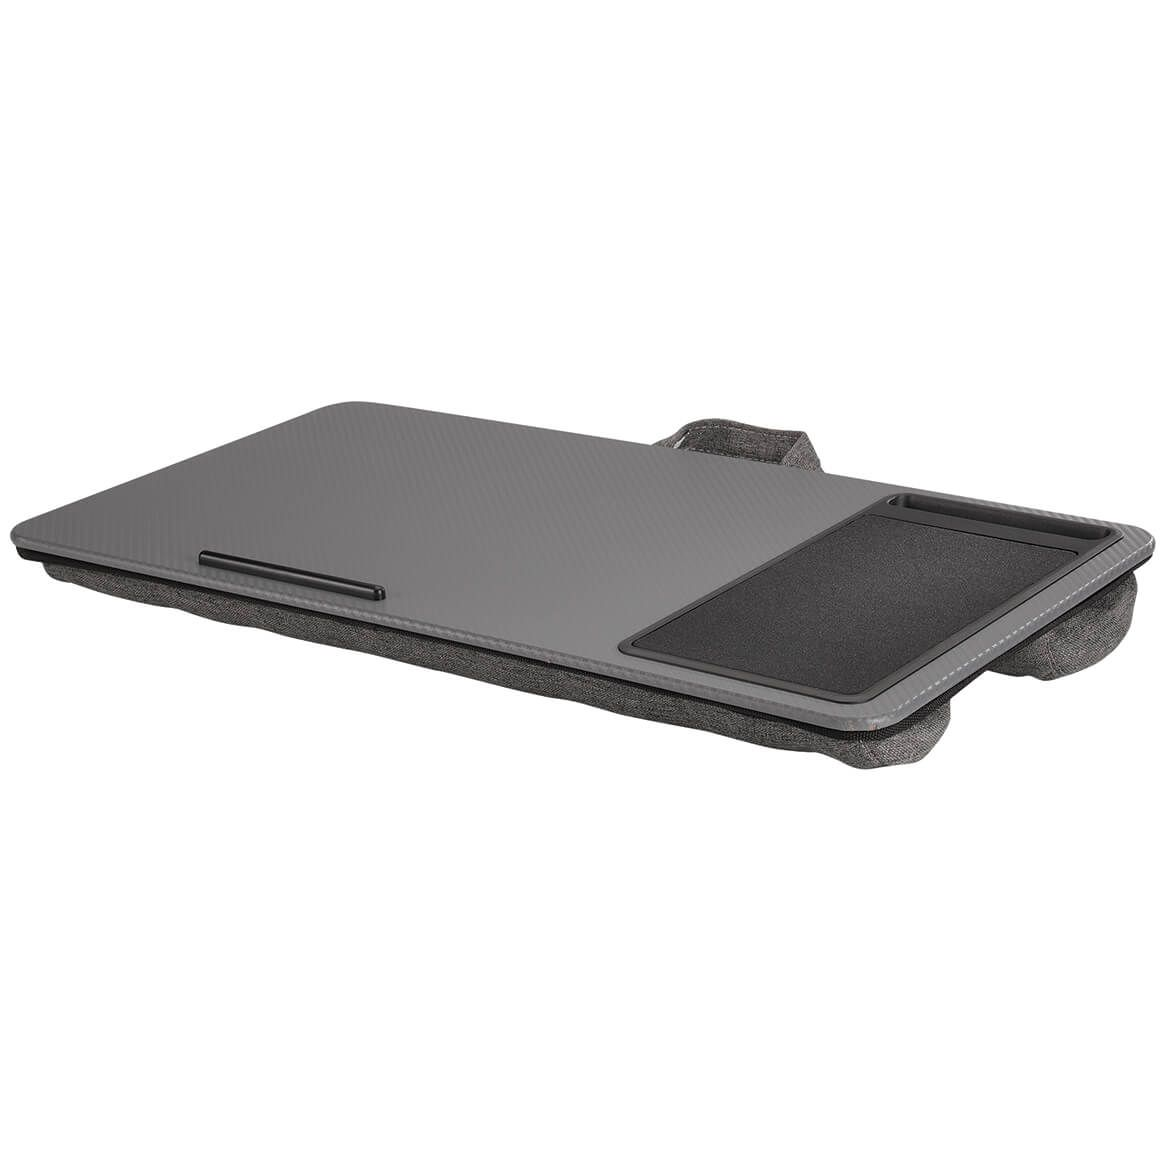 Cushioned Deluxe Laptop LapDesk-370949